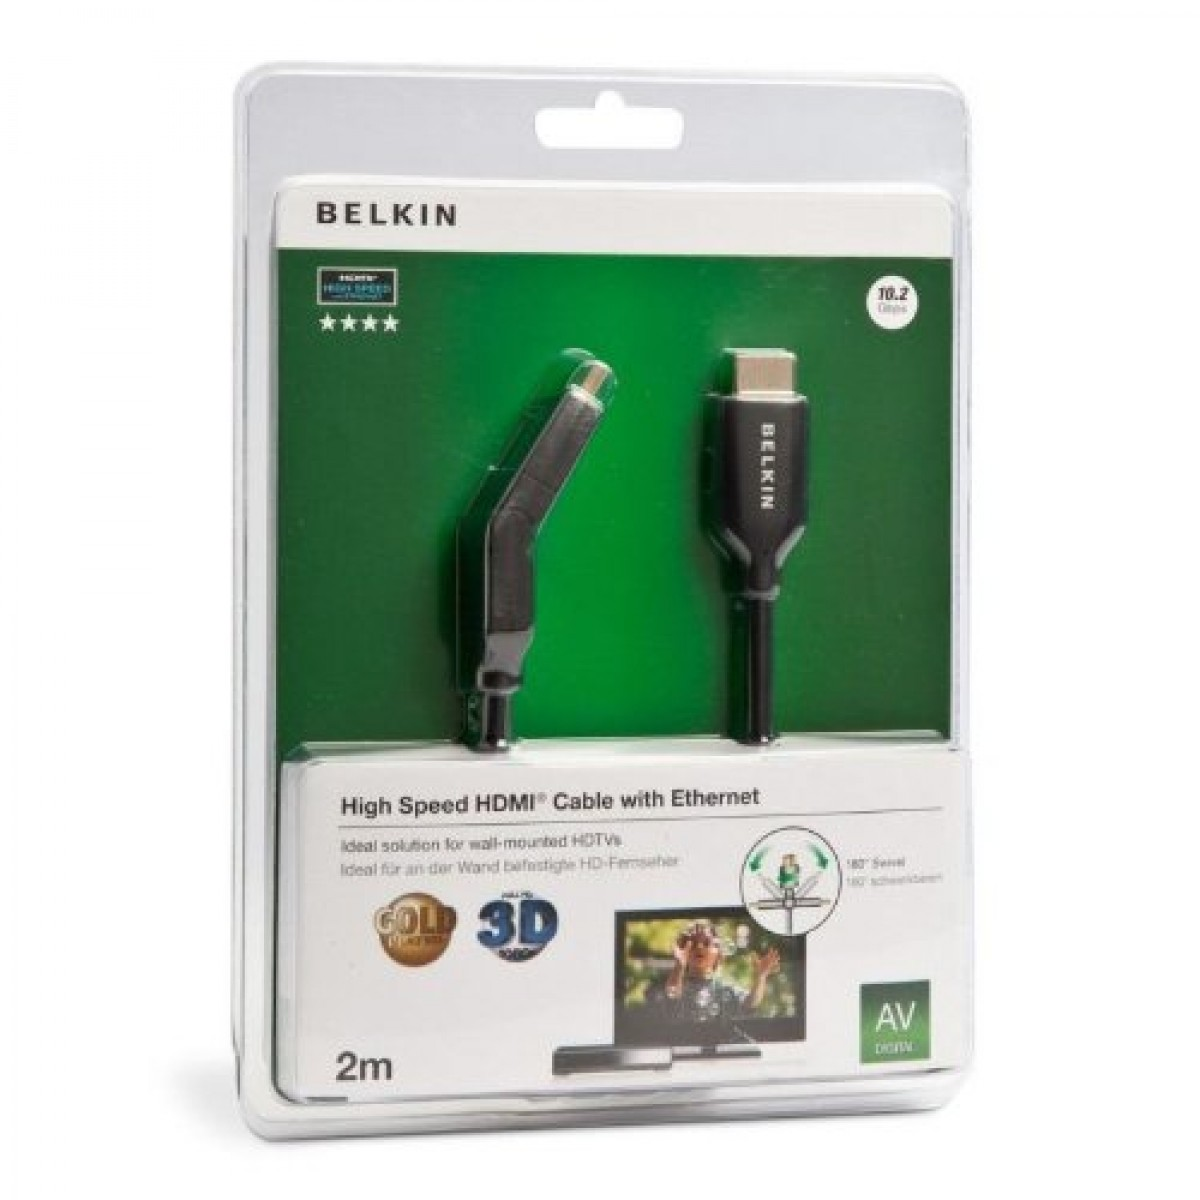 Belkin Hdmi Cable Male Dual Swivel With Ethernet Gold Plated In 2meter Black 2m